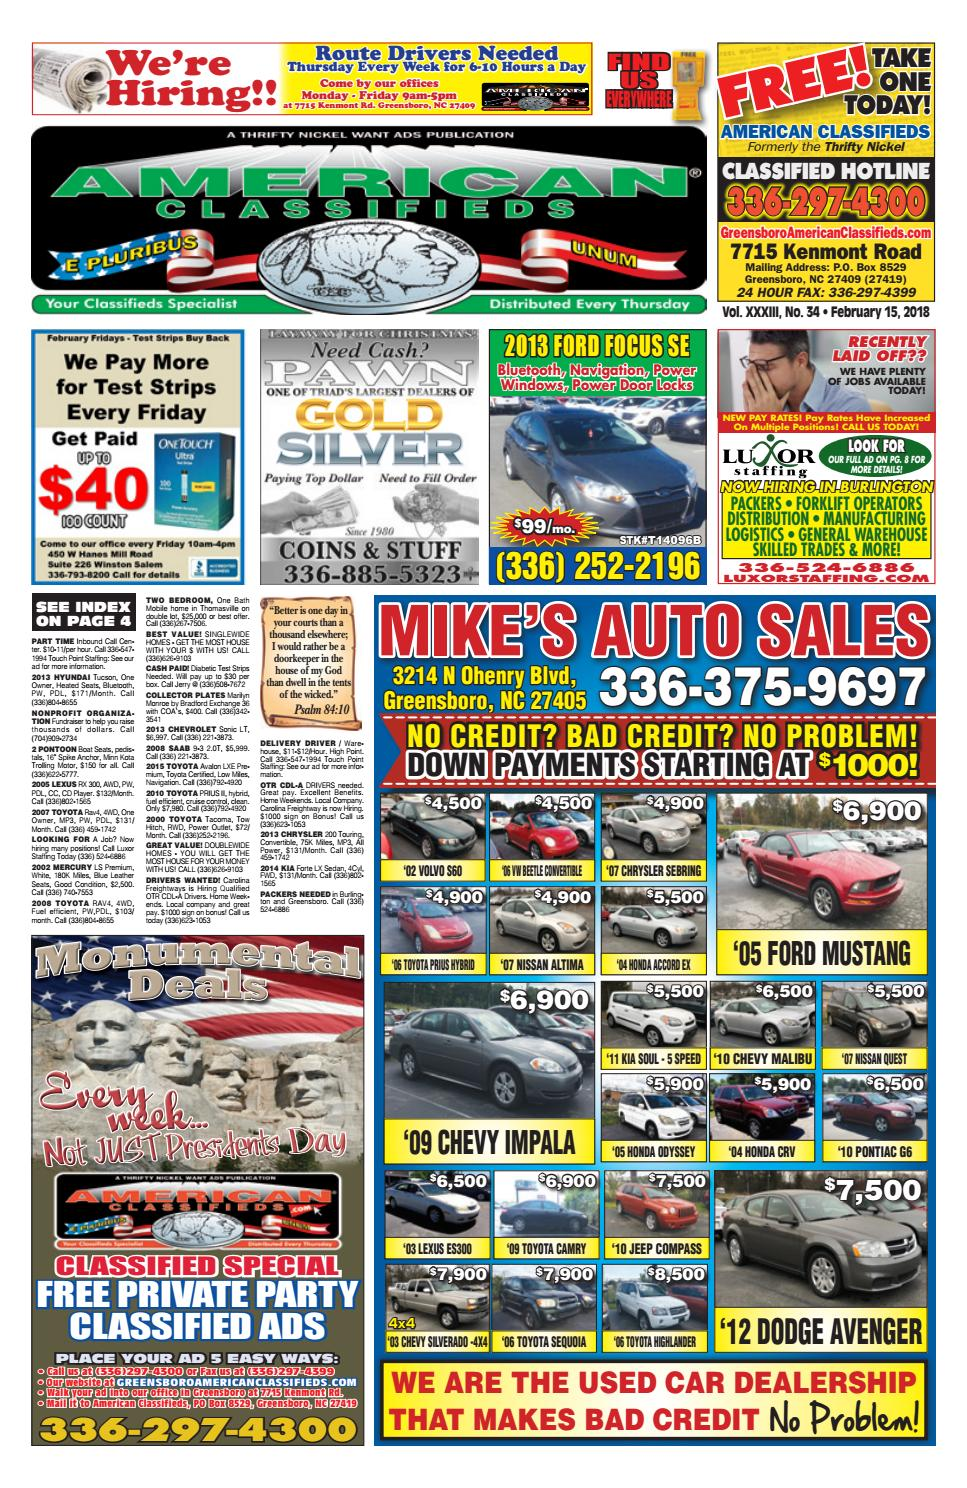 American Classifieds Greensboro, NC by Melissa Fedeli - issuu